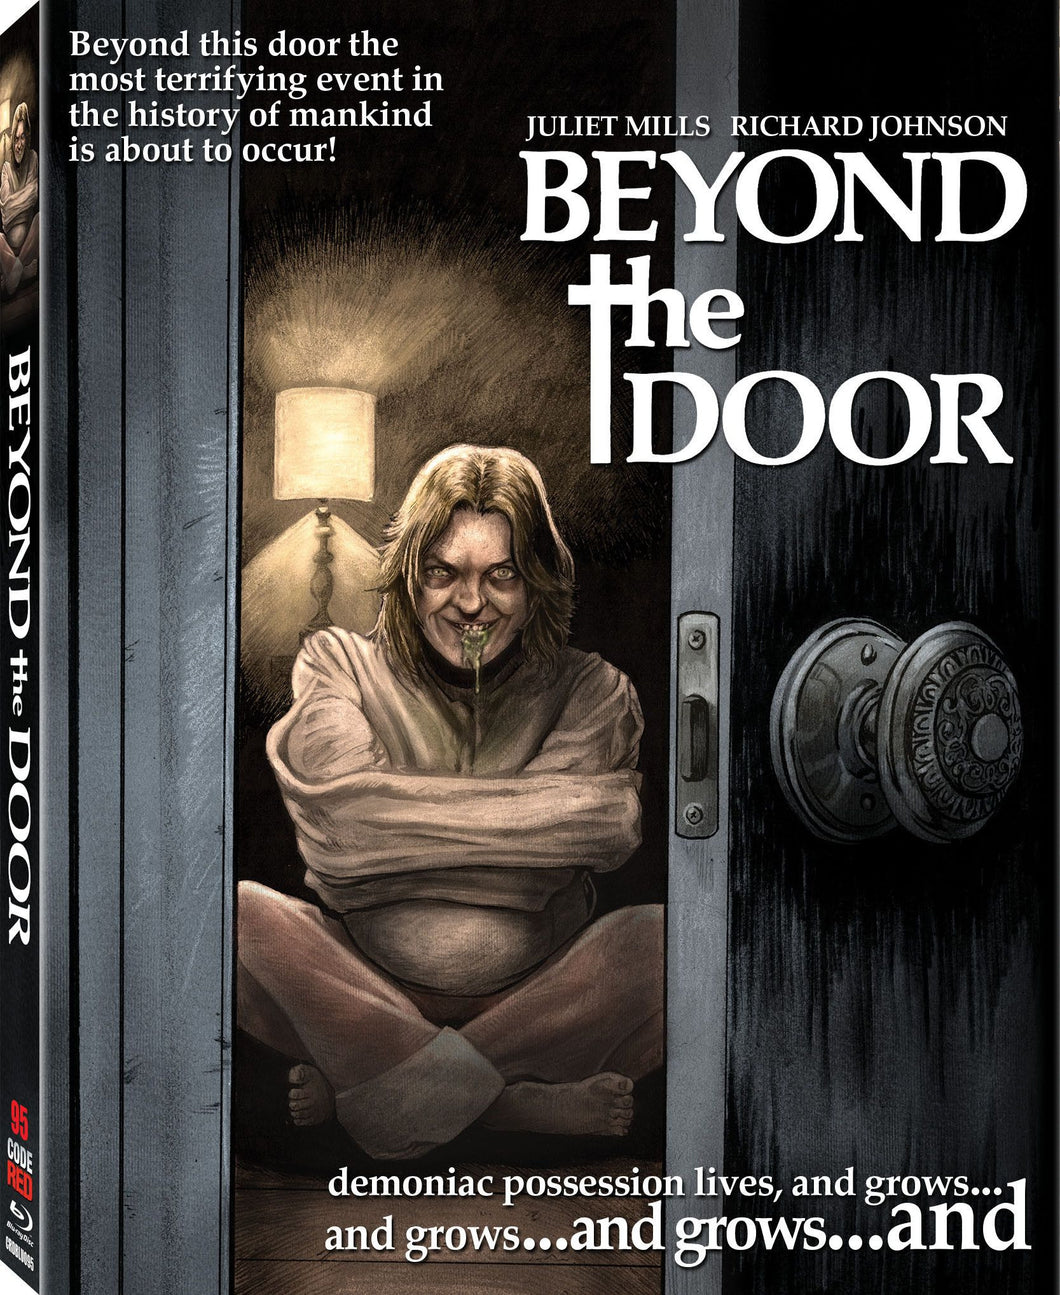 Beyond the Door (Blu-ray): Ronin Flix - Slipcover